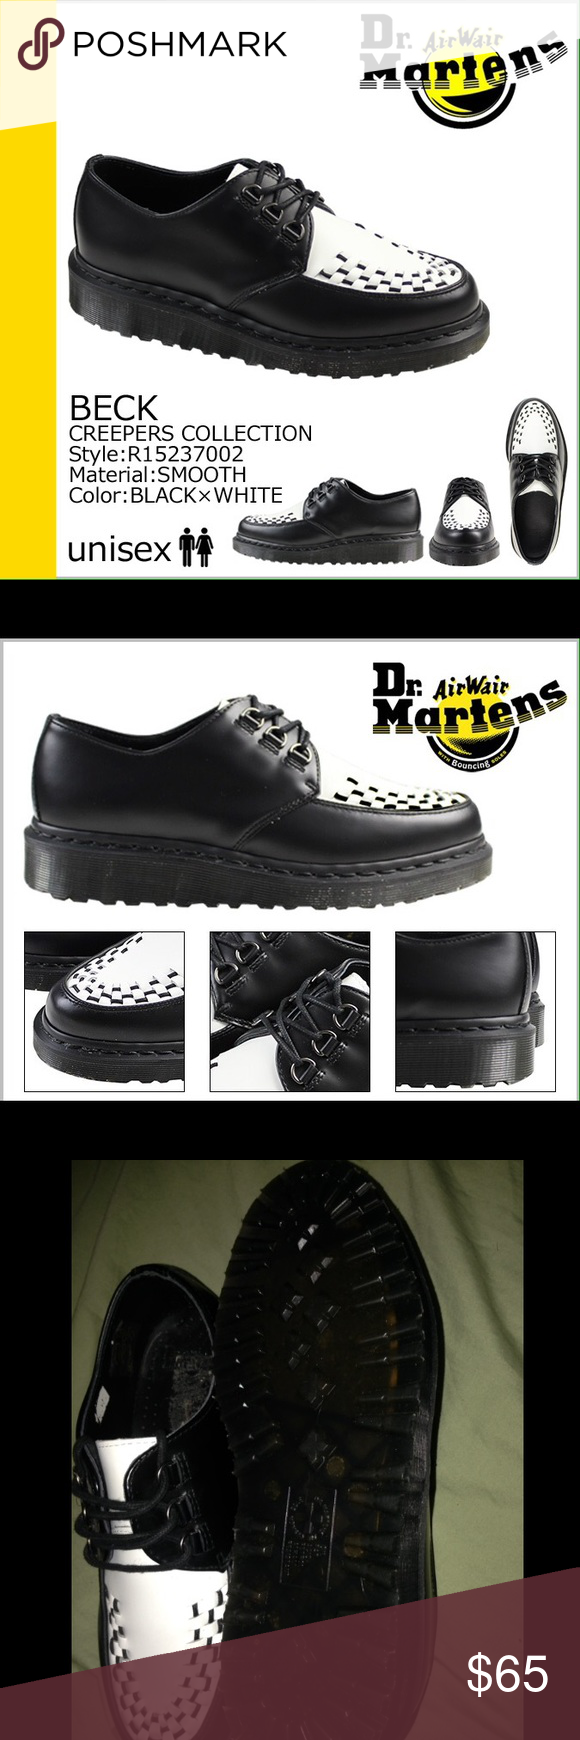 "Dr. marten shoes Dr. marten ""creeper"" shoes never worn outside or walked in just tried on. No box. still with authentic tag approving real doc marten brand. Marked as a men's size 6 but shoes are unisex will fit a woman size 8 Dr. Martens Shoes Platforms"